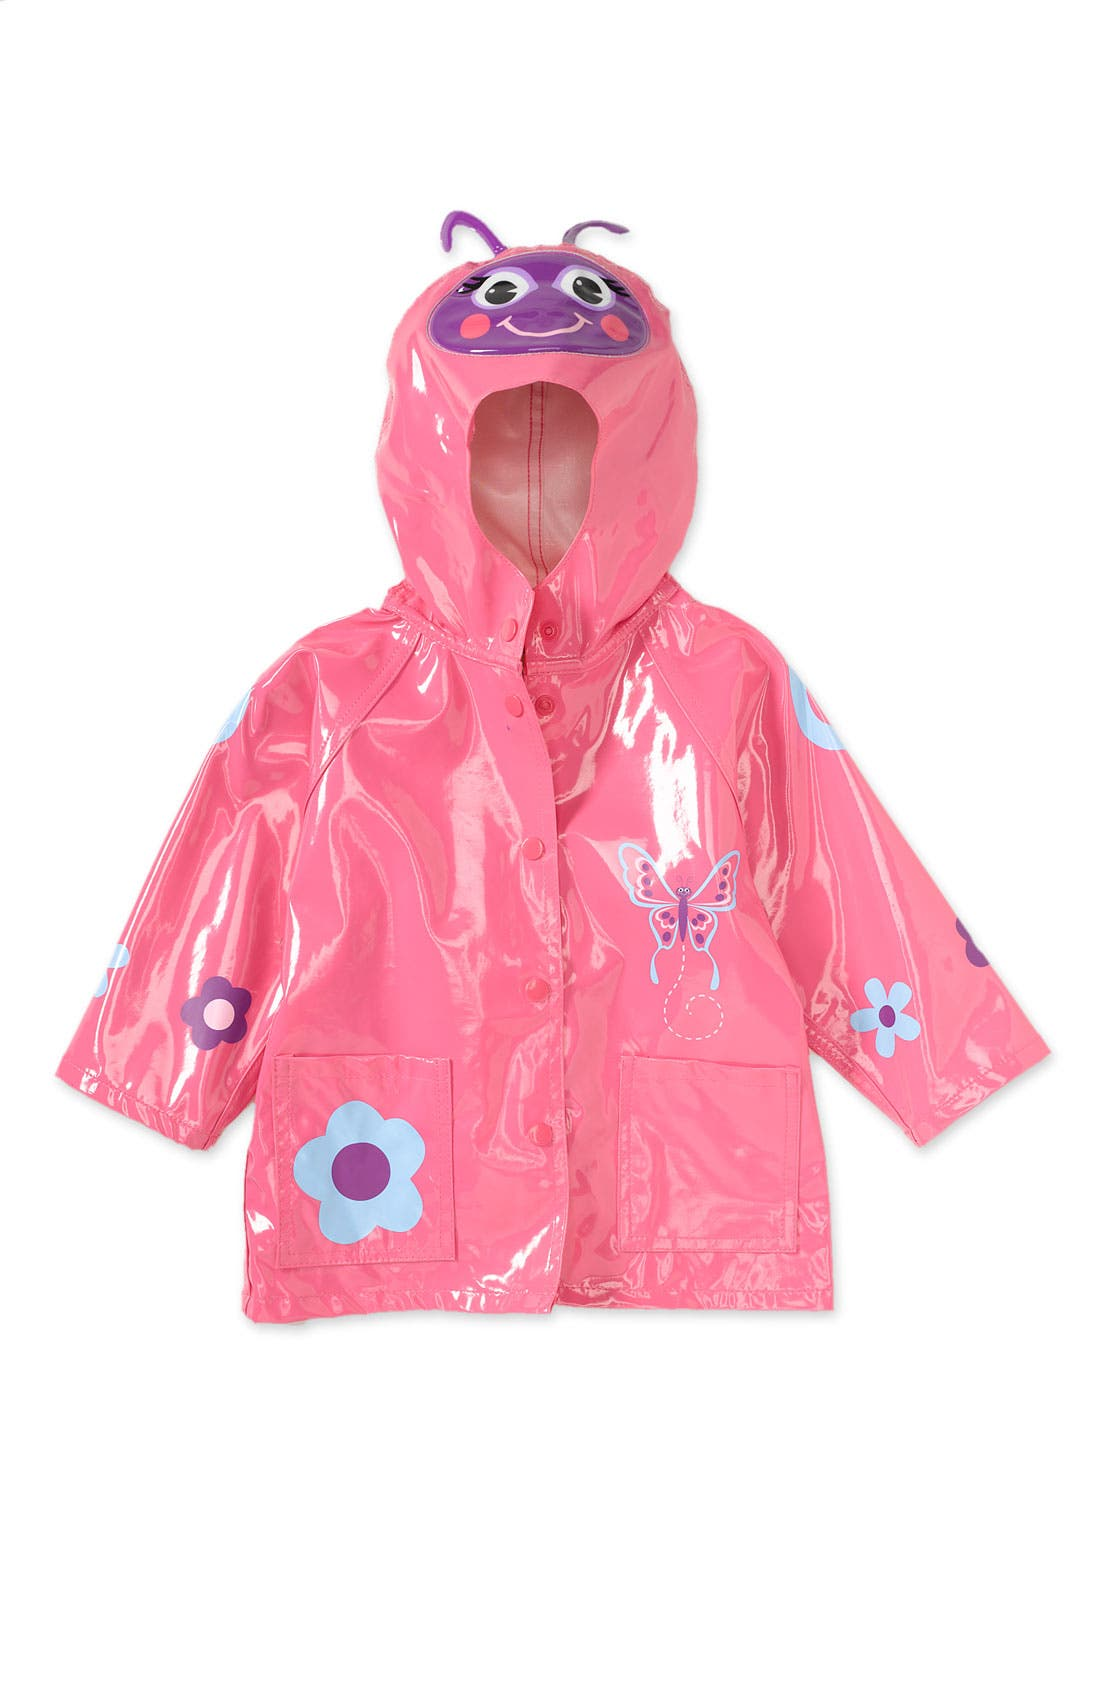 Alternate Image 1 Selected - Western Chief 'Butterfly' Raincoat (Little Kid)